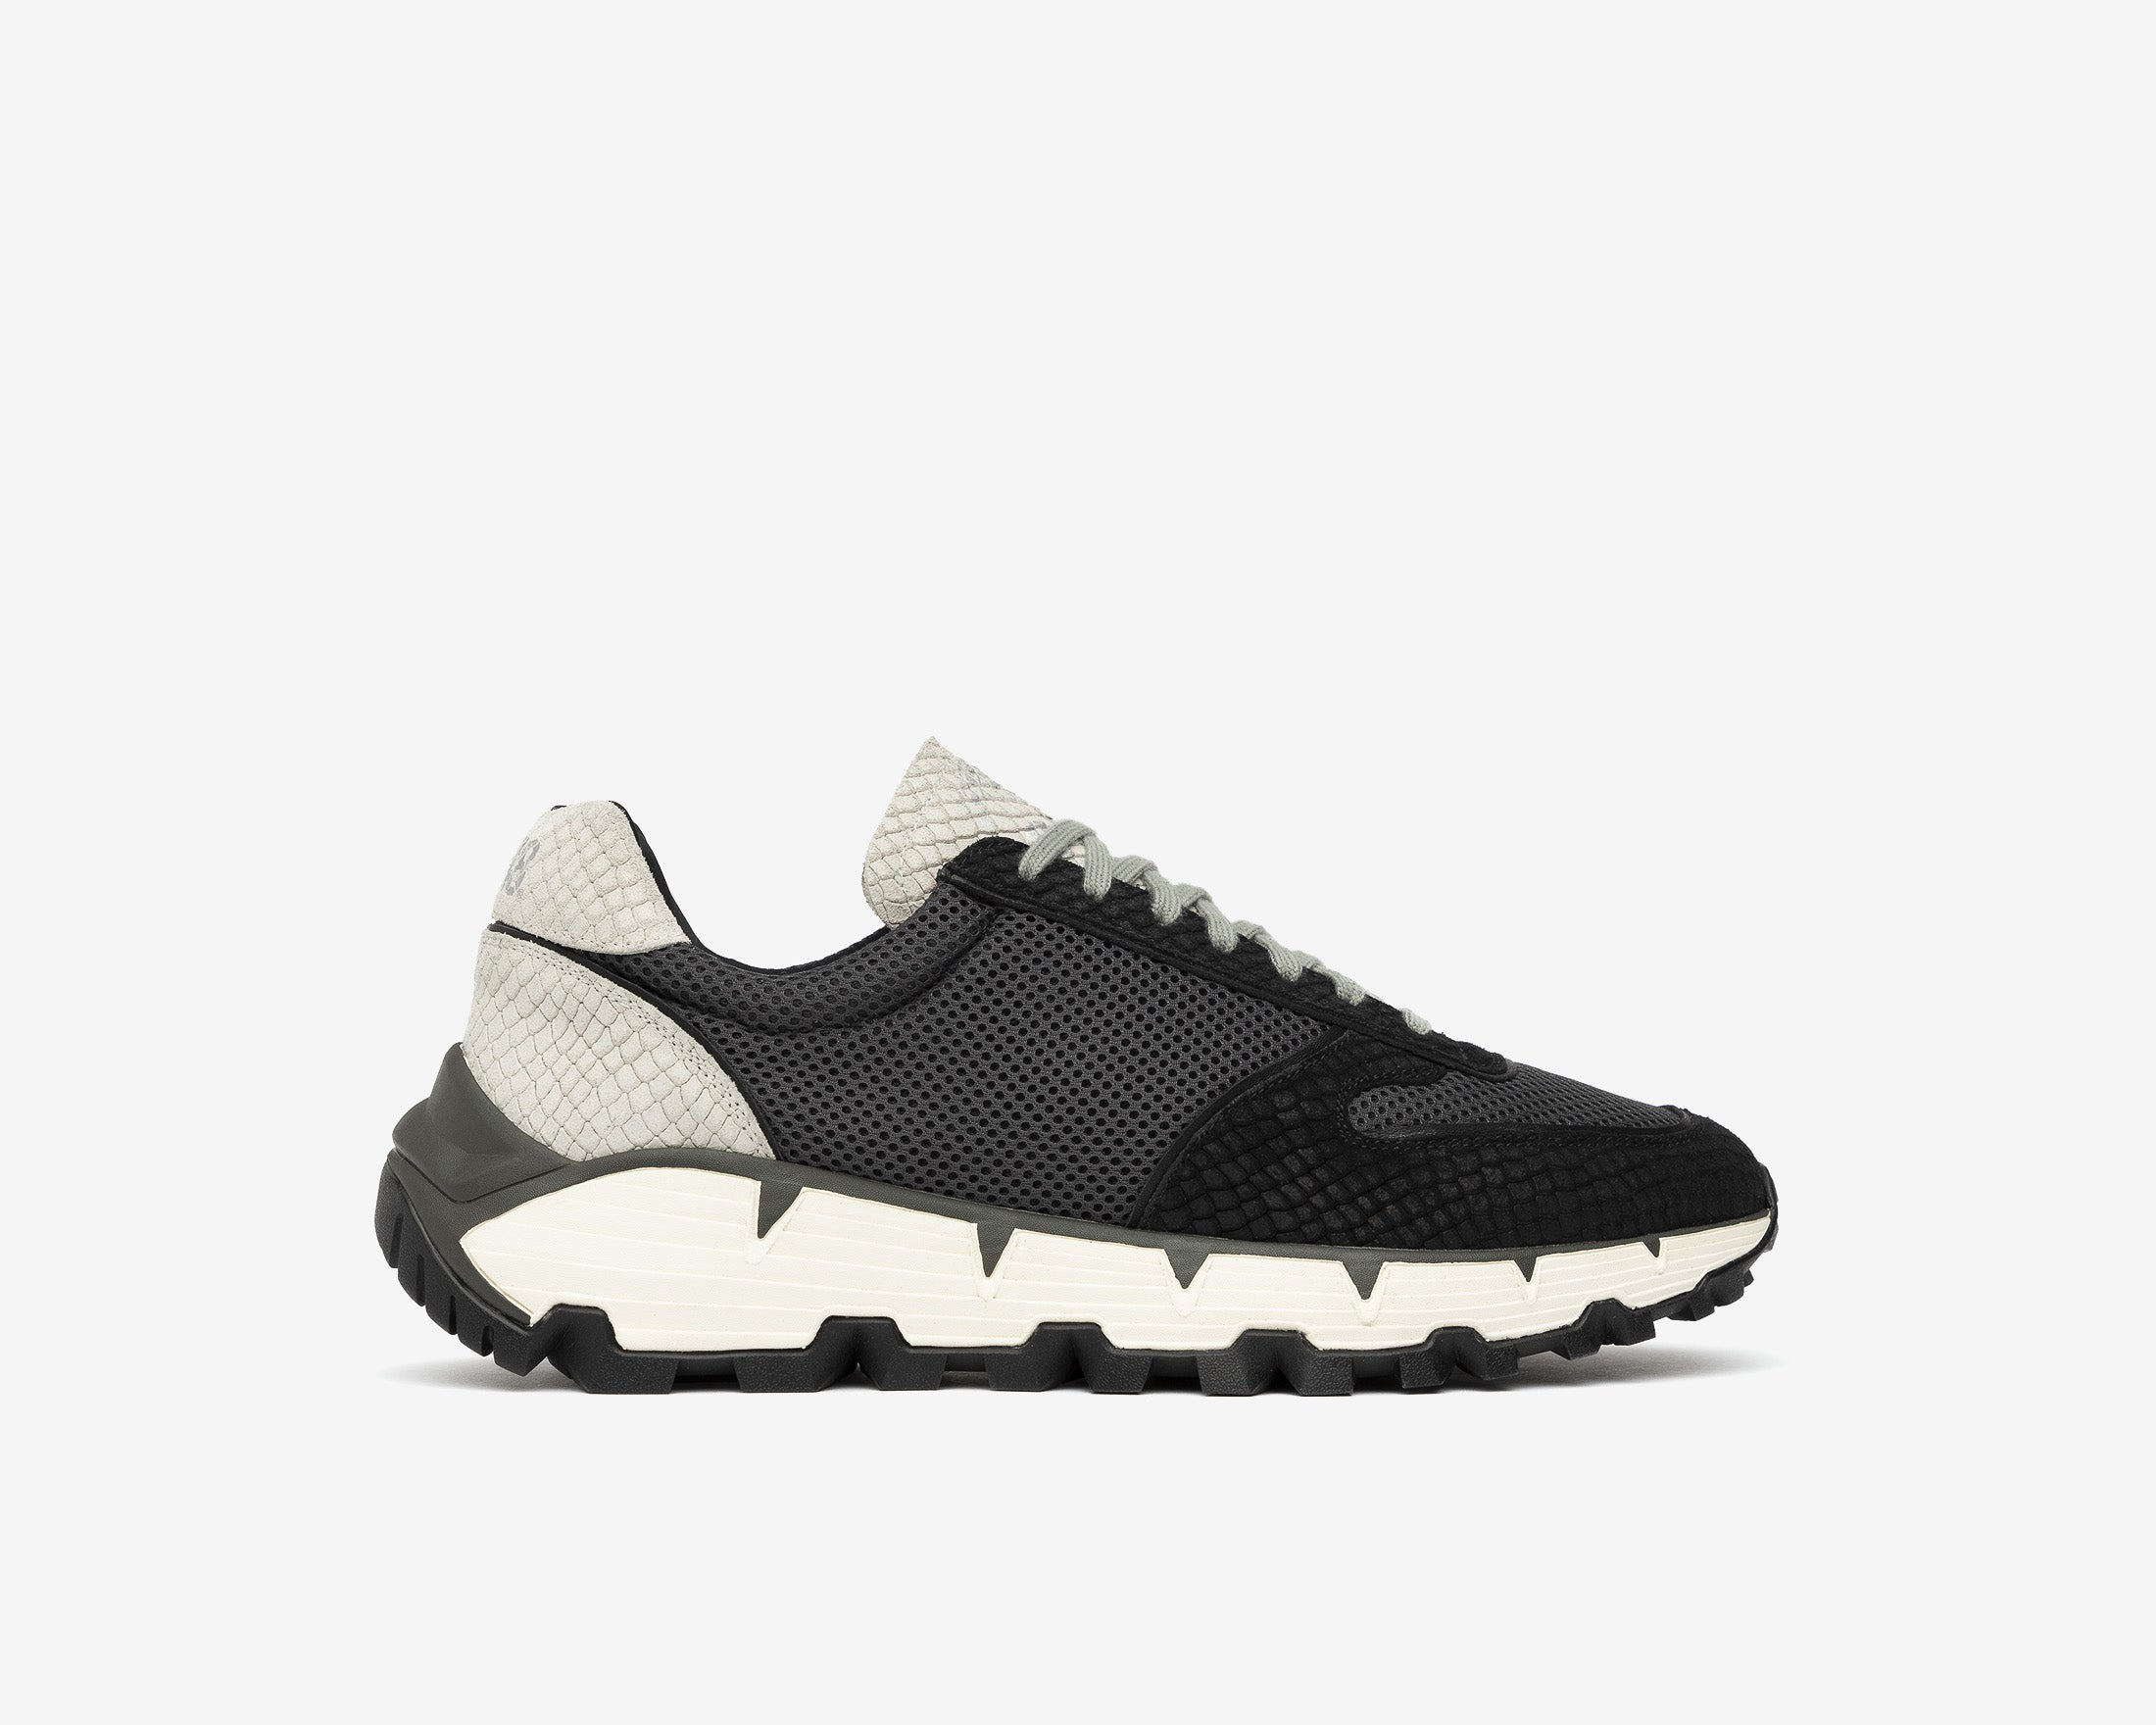 Jackson Chunky Sneaker in Black/Gray MultiSnake - Profile